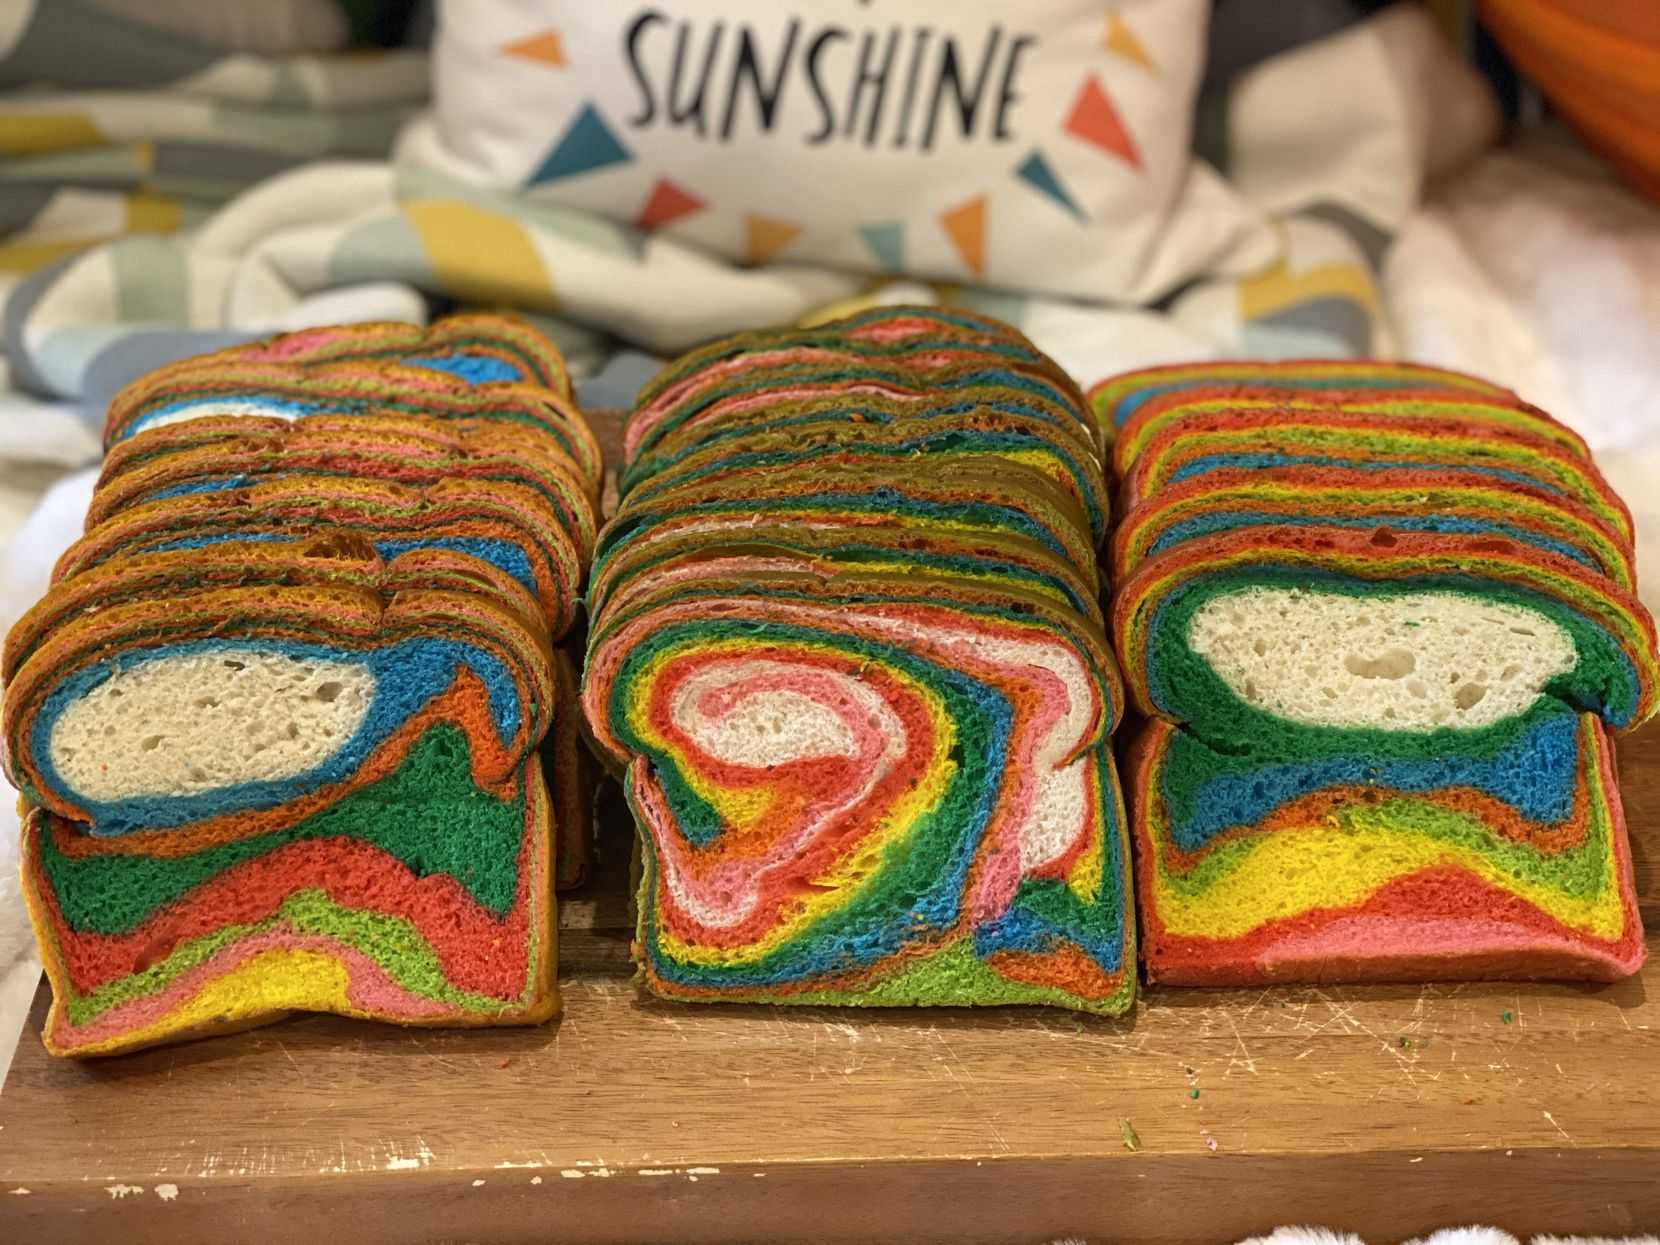 Customers can choose to add a rainbow loaf to their Easter BUNny Bundle when ordering from Signature Baking Co. this spring.